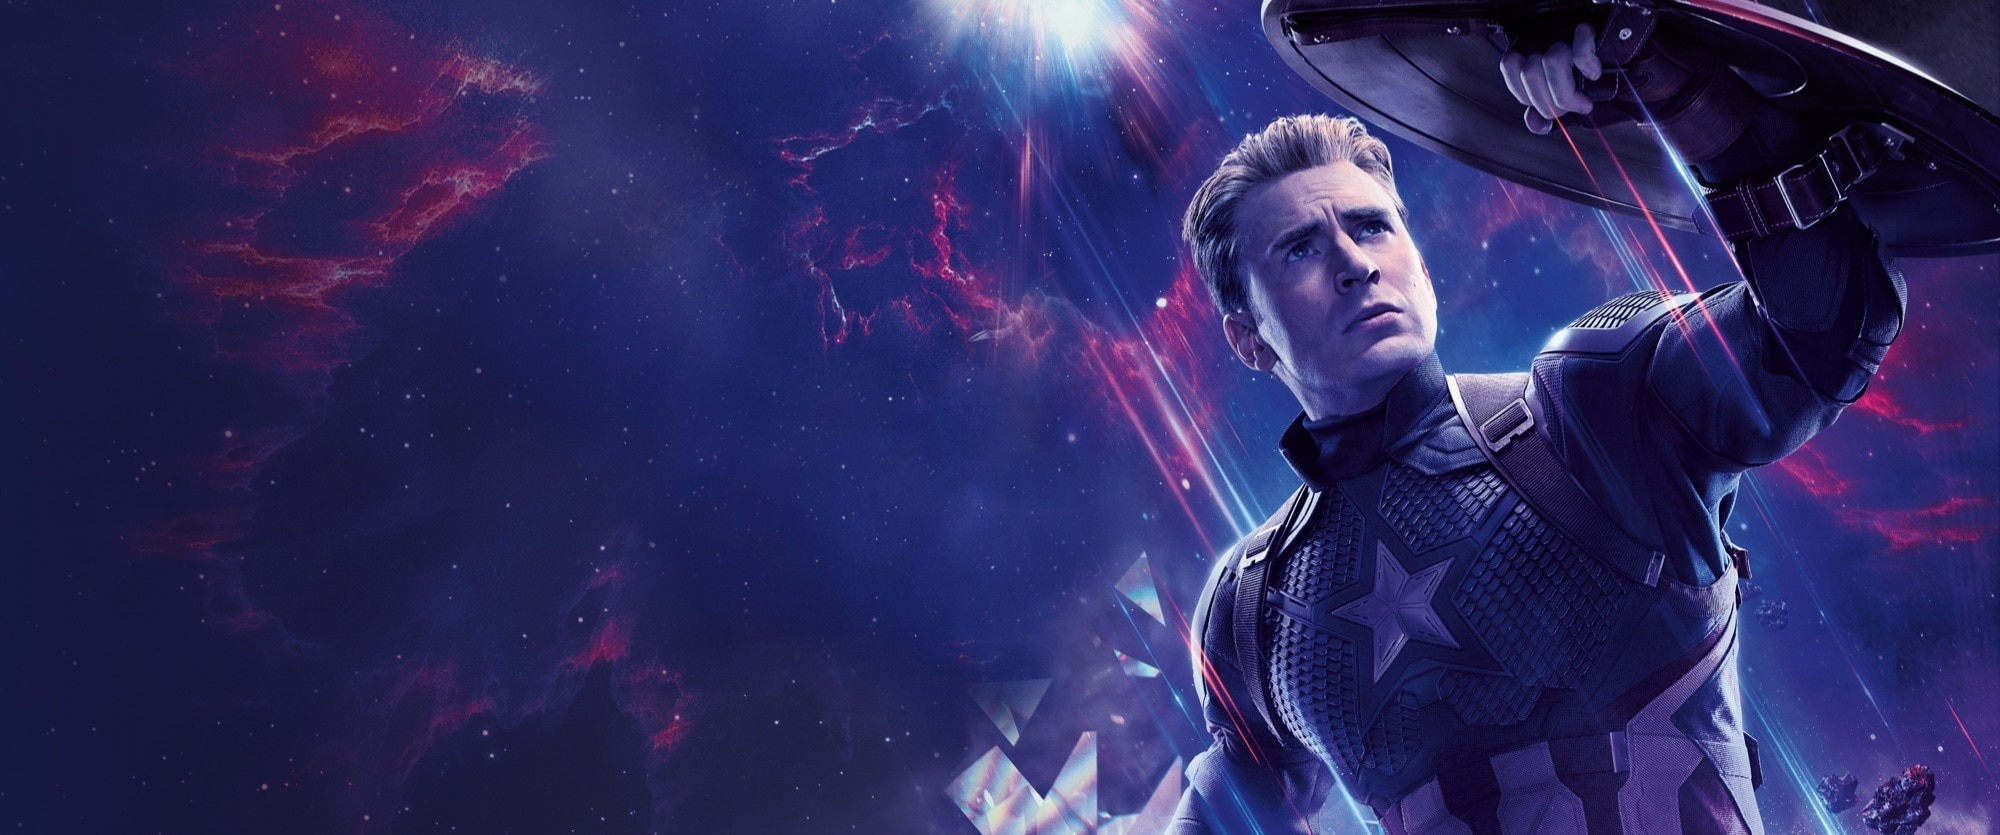 Avengers: Endgame | In Cinemase 24 April